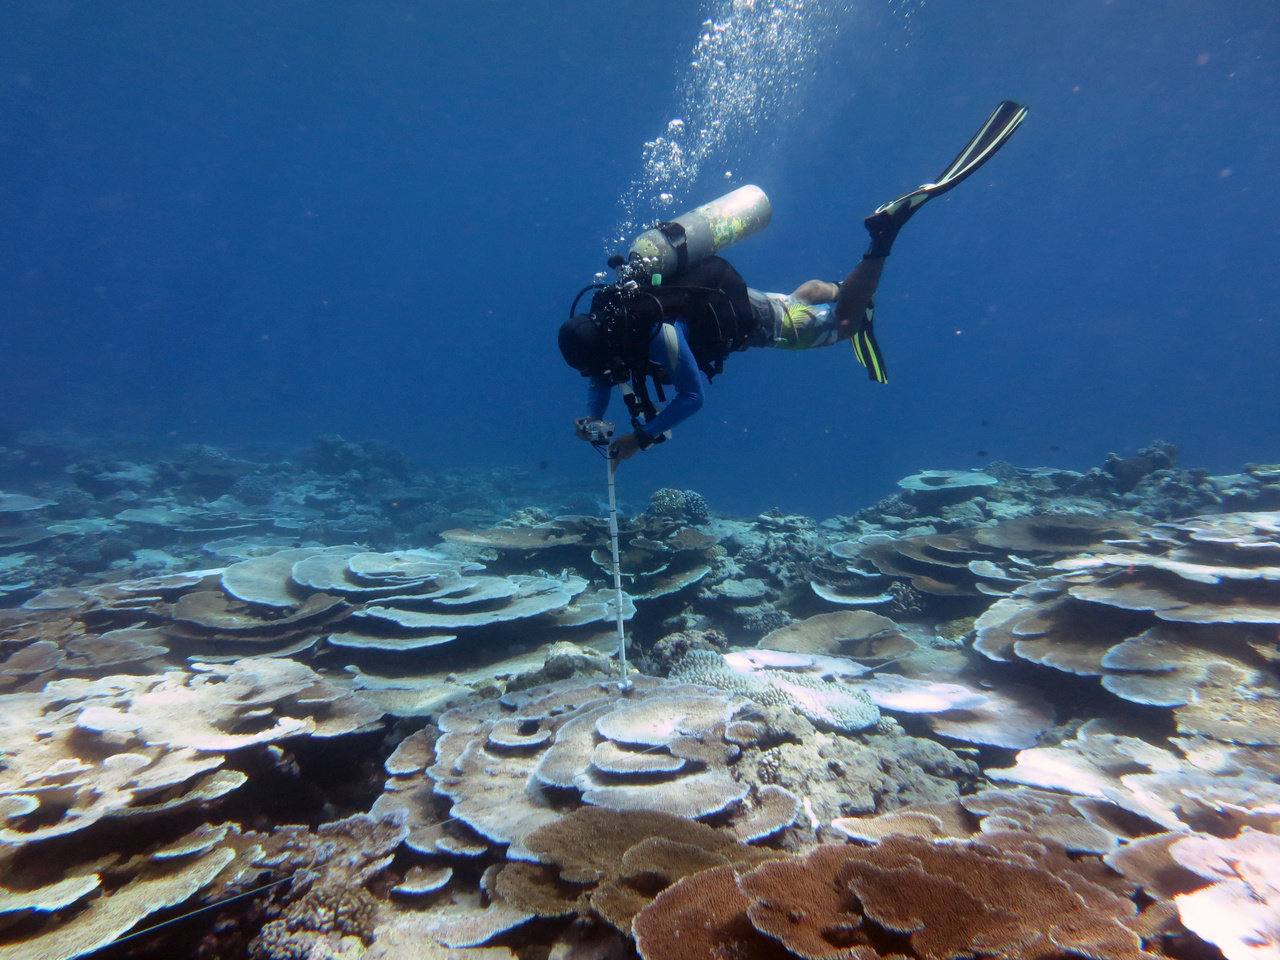 Diver conducts survey of bleached corals in 2015 at Tutuila Island, American Samoa.